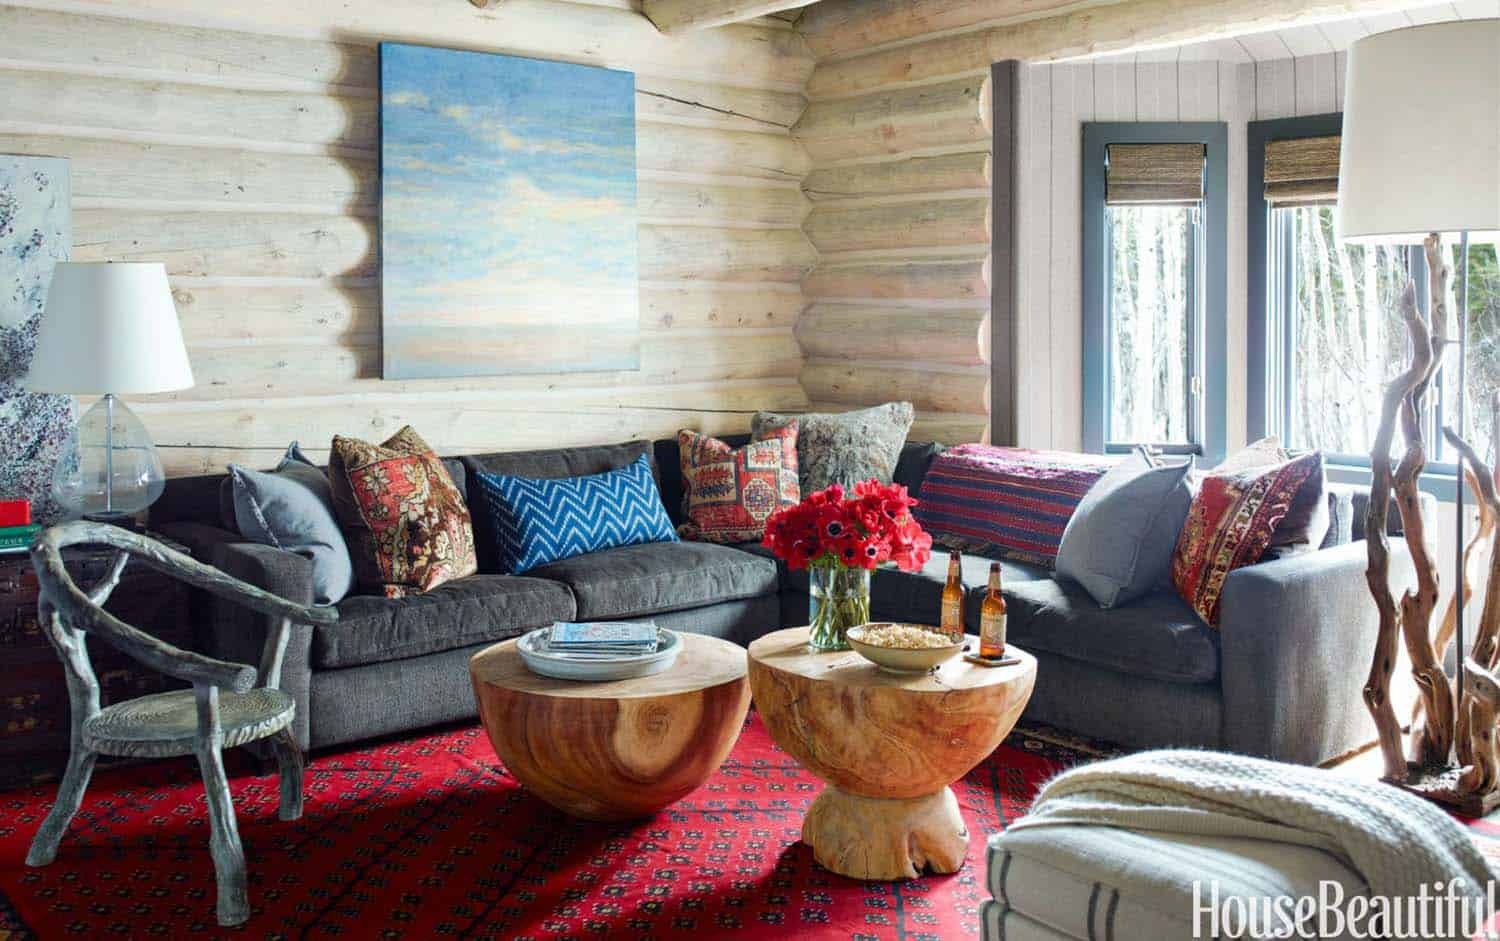 Rustic Log Cabin-Thom Filicia-11-1 Kindesign